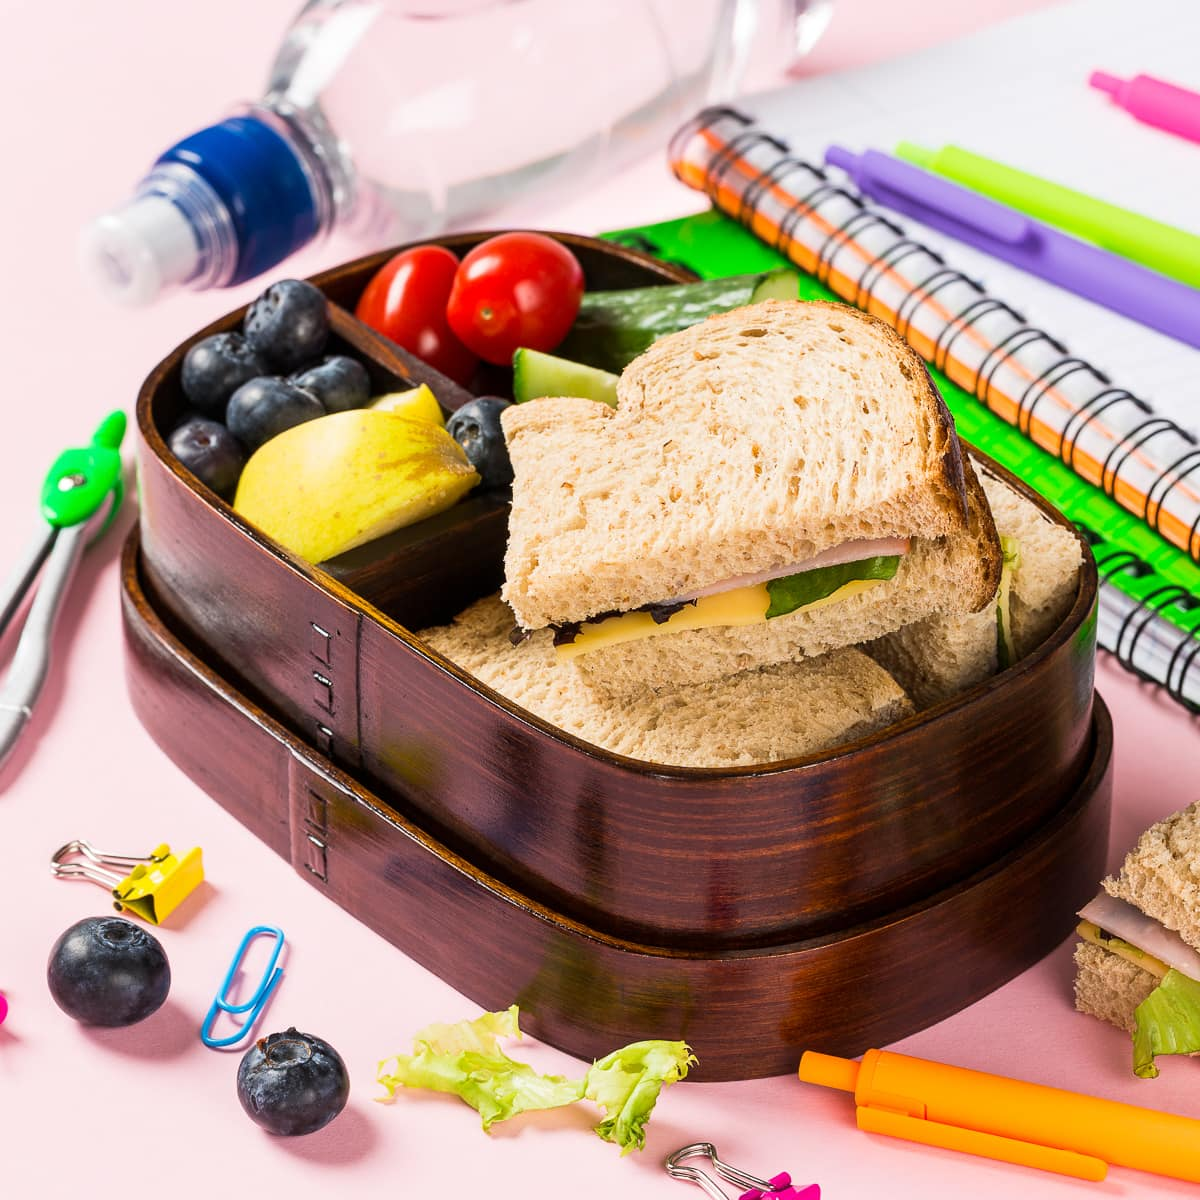 Wooden lunch box with sandwiches, vegetables and fruits on pink background and school stationery. Childrens eating concept.